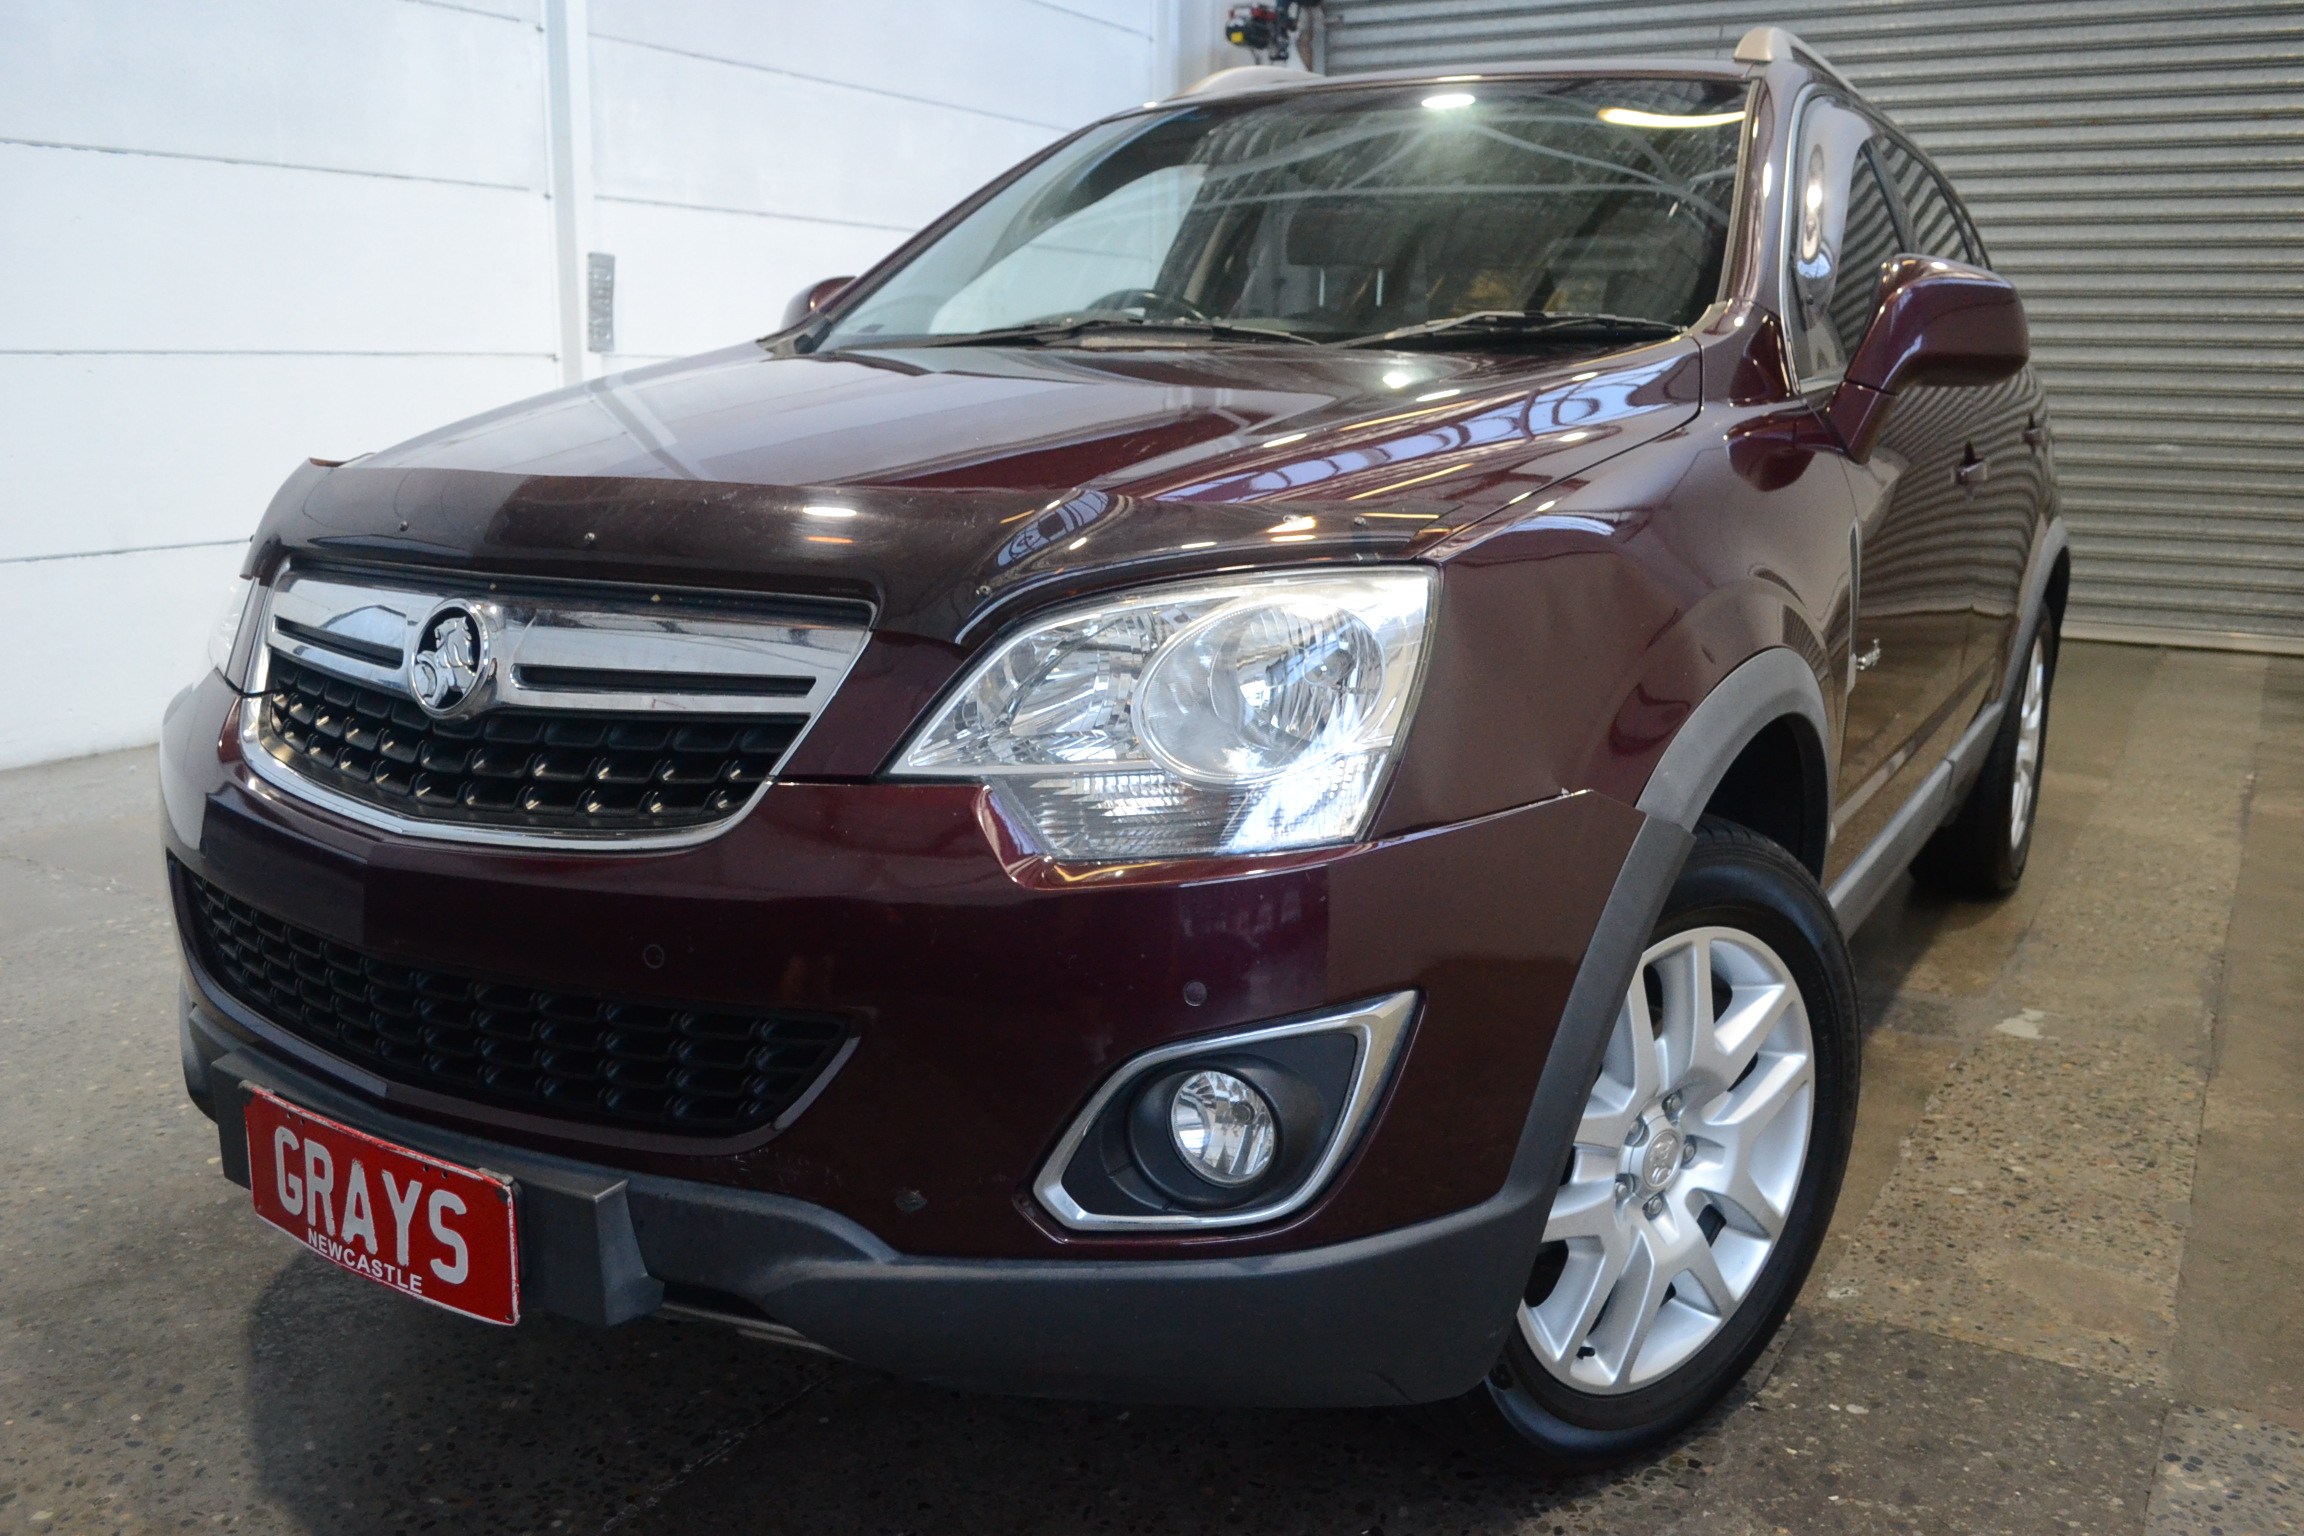 Holden Captiva 5 (FWD) CG II Manual Wagon